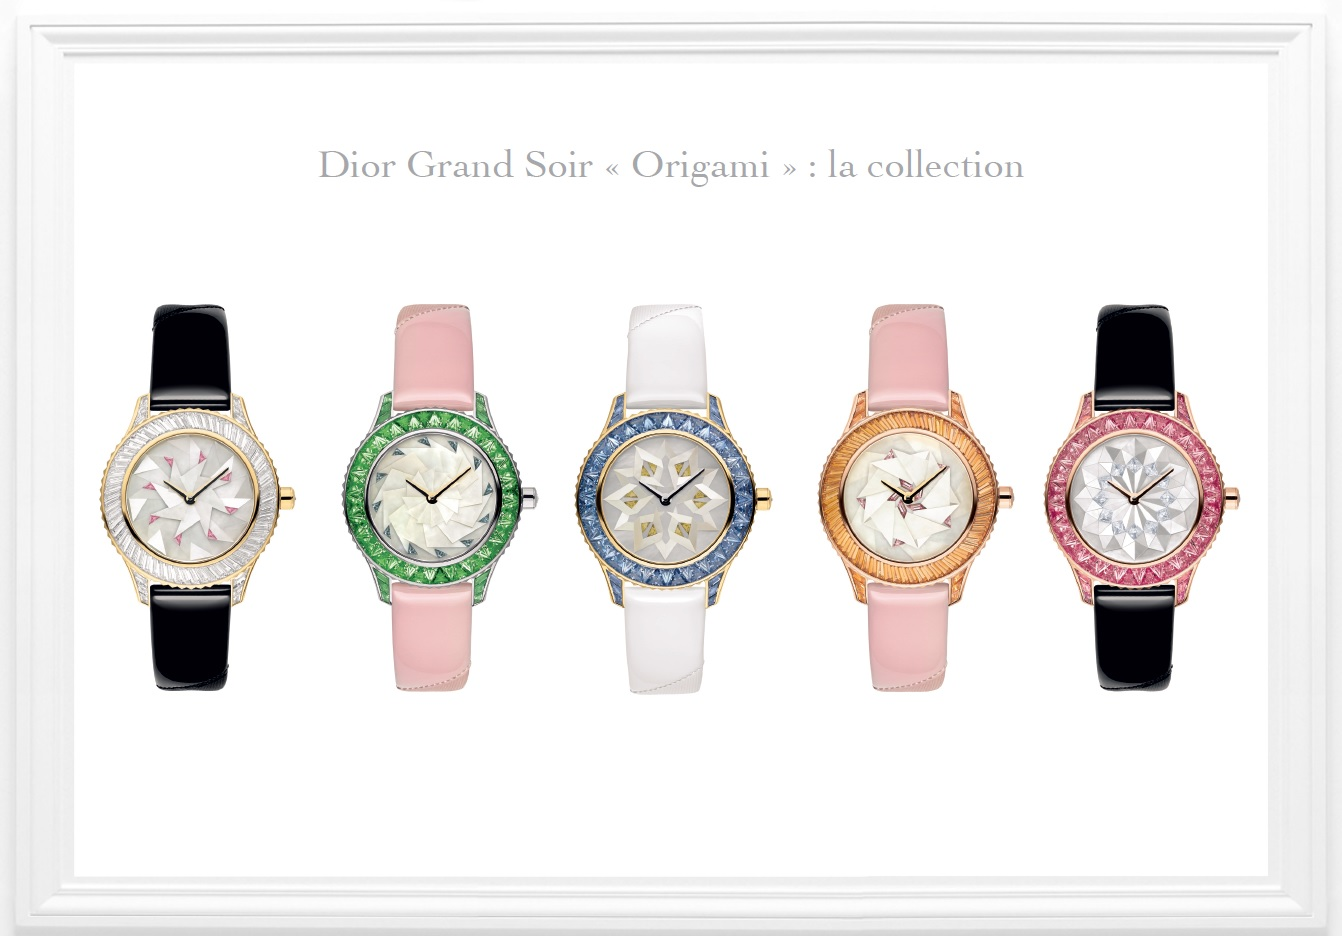 Dior Grand Soir Origami collection